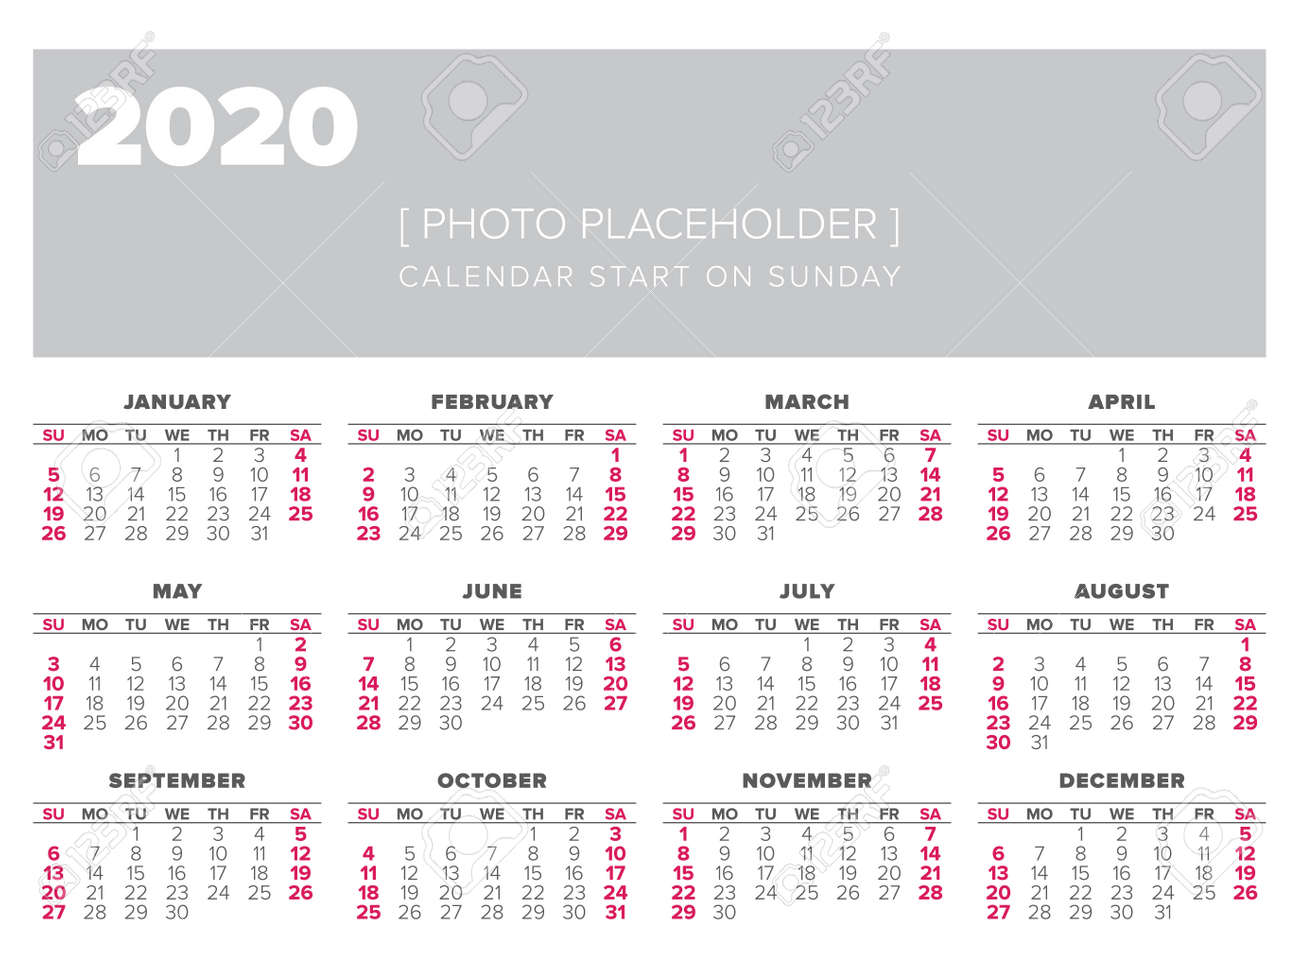 Calendario 2020 Vector Gratis.Calendar 2020 Year Vector Design Template Start On Sunday